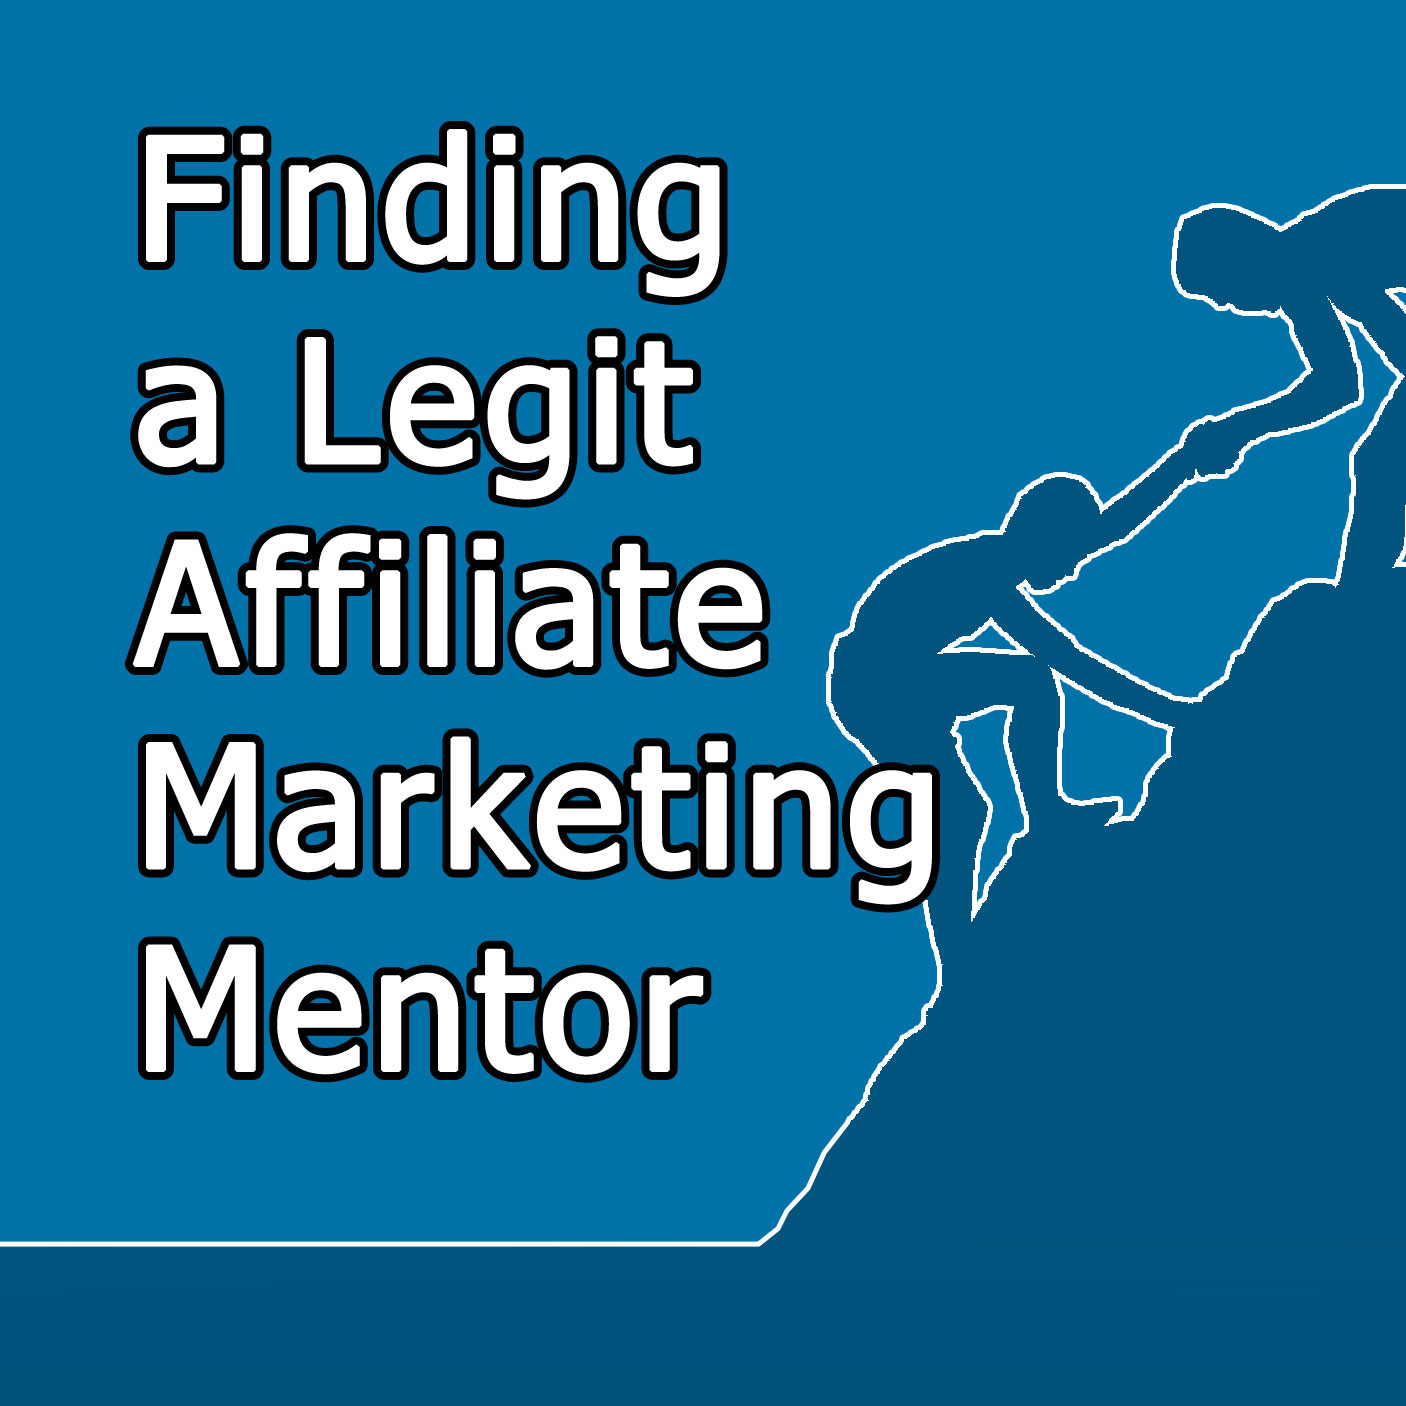 How To Find a Legit Affiliate Marketing Mentor